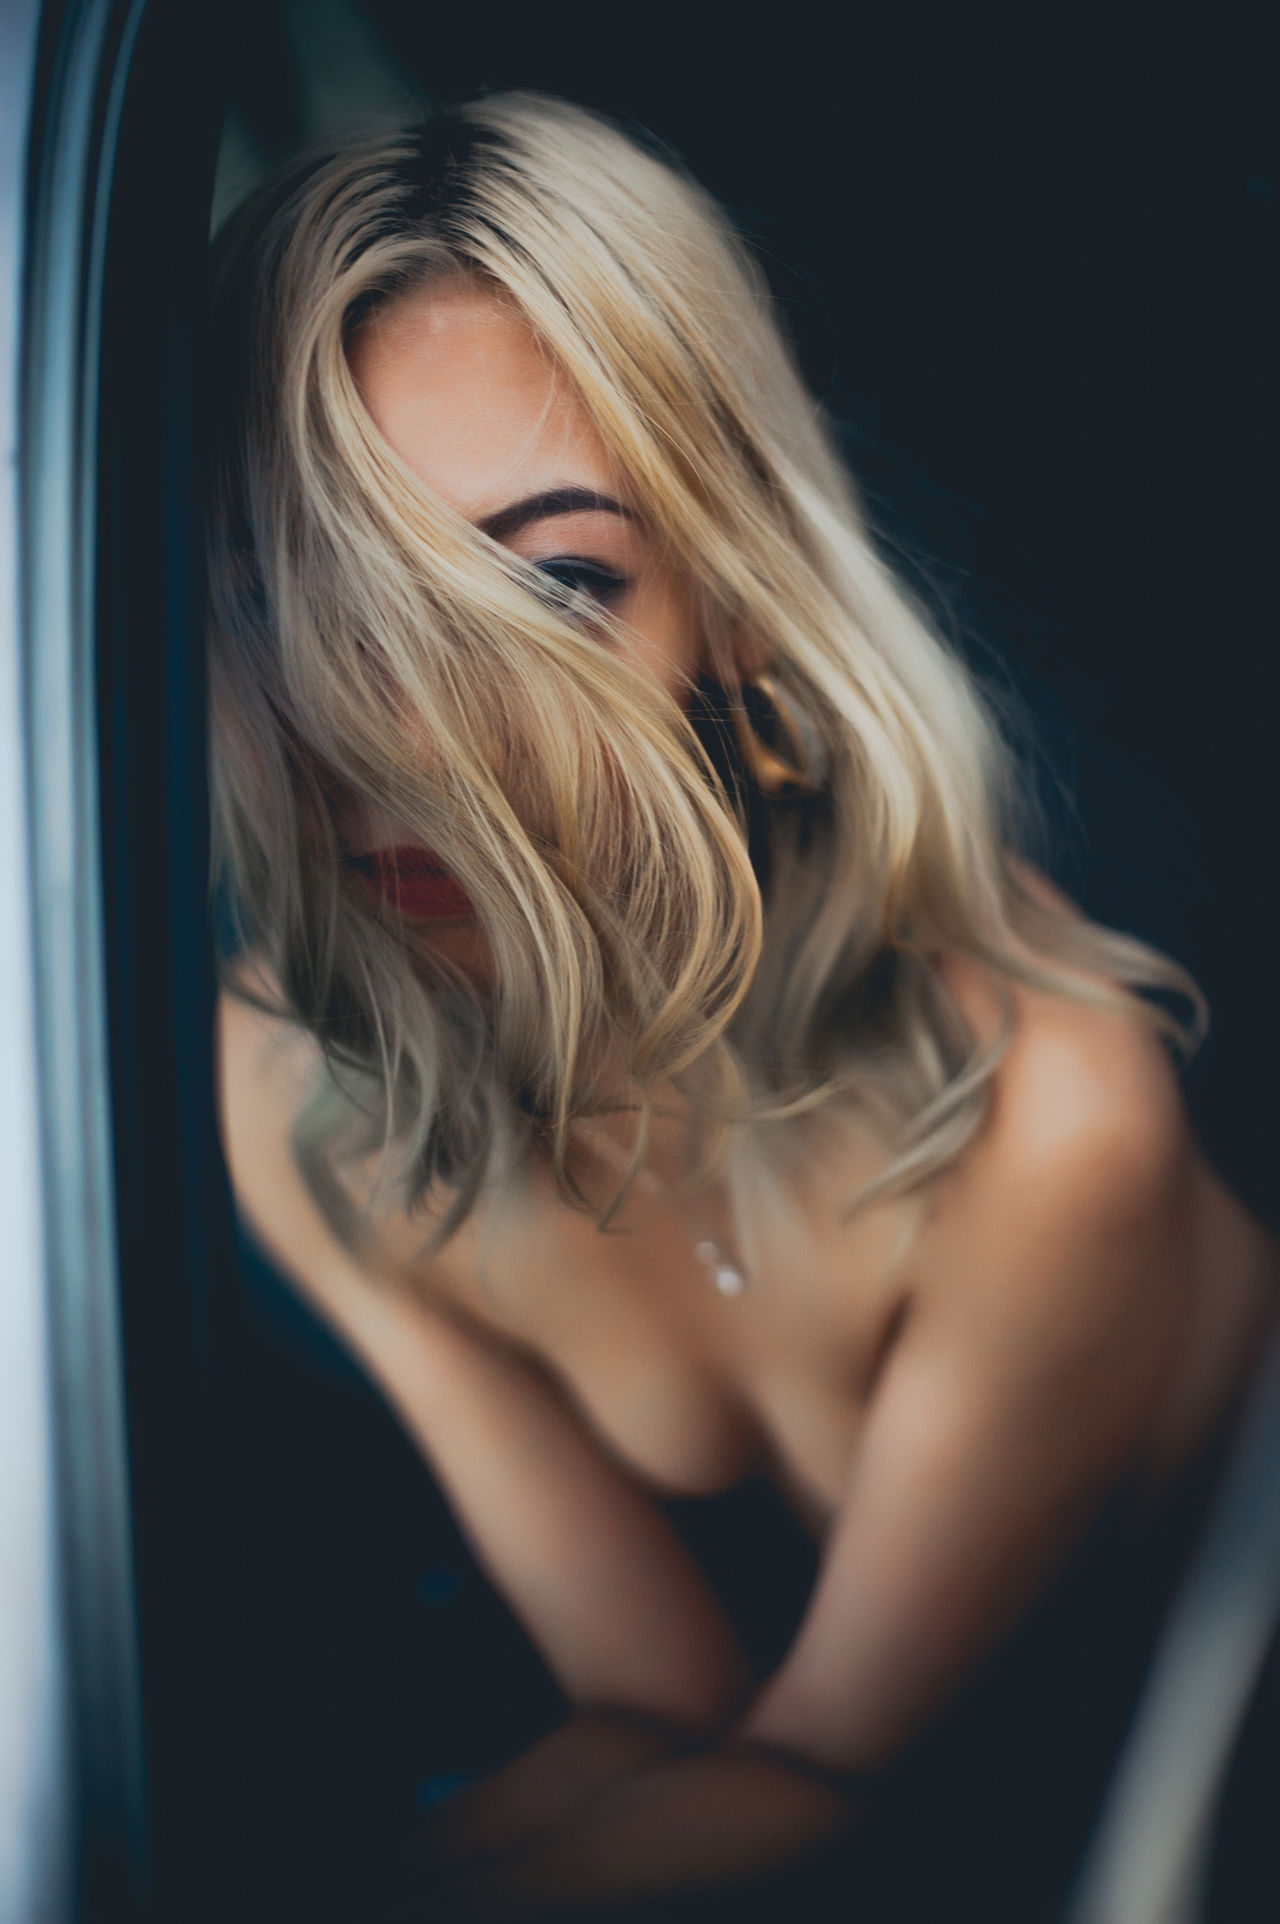 Beautiful Woman Blond Hair Close-up Day Indoors  One Person People Real People The Portraitist - 2017 EyeEm Awards Young Adult Young Women